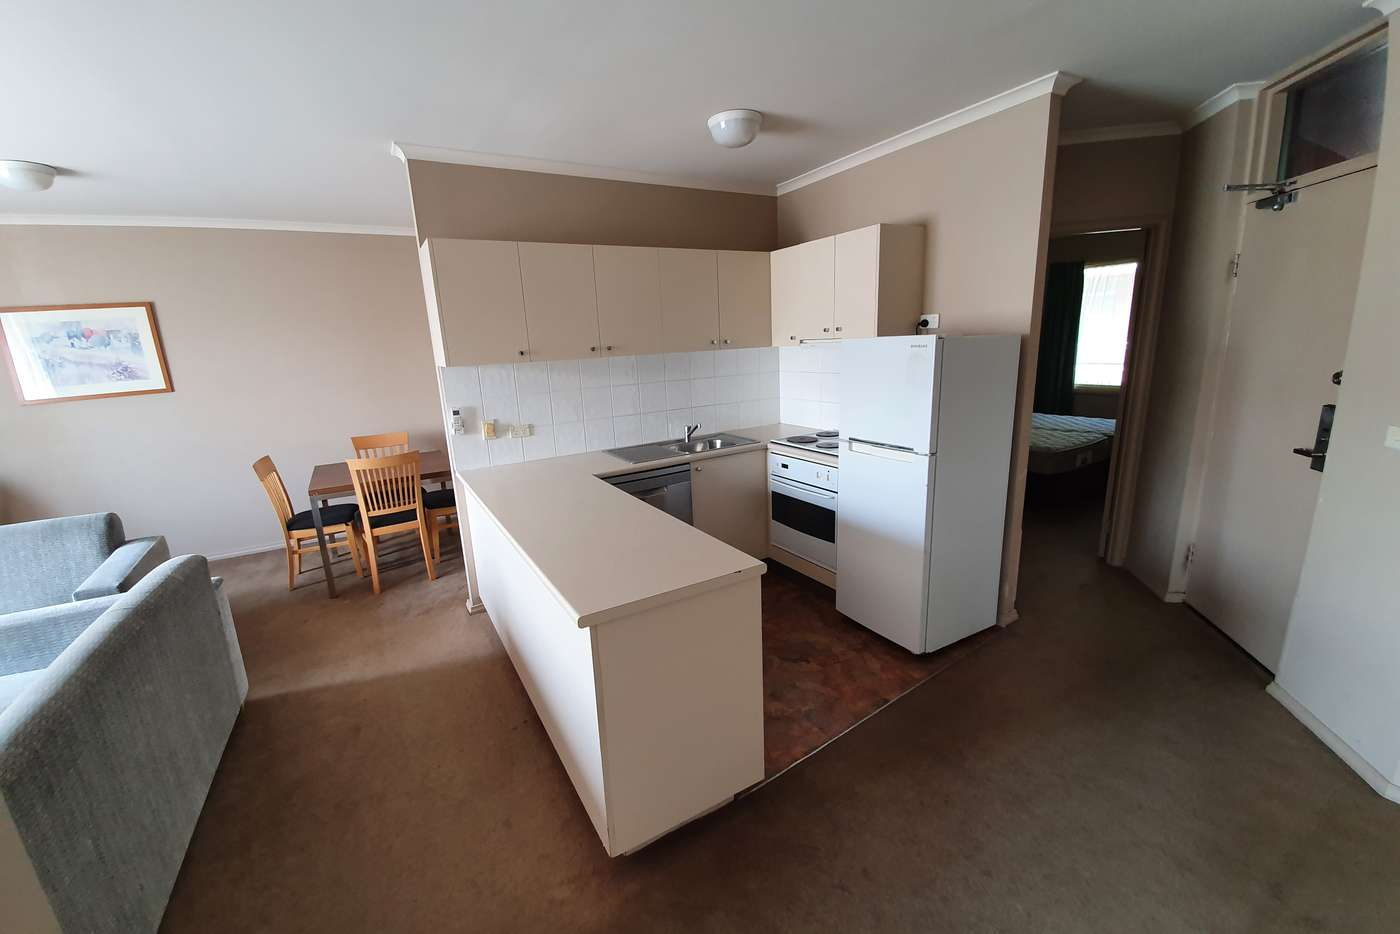 Seventh view of Homely apartment listing, 327/111 Punt Road, Prahran VIC 3181